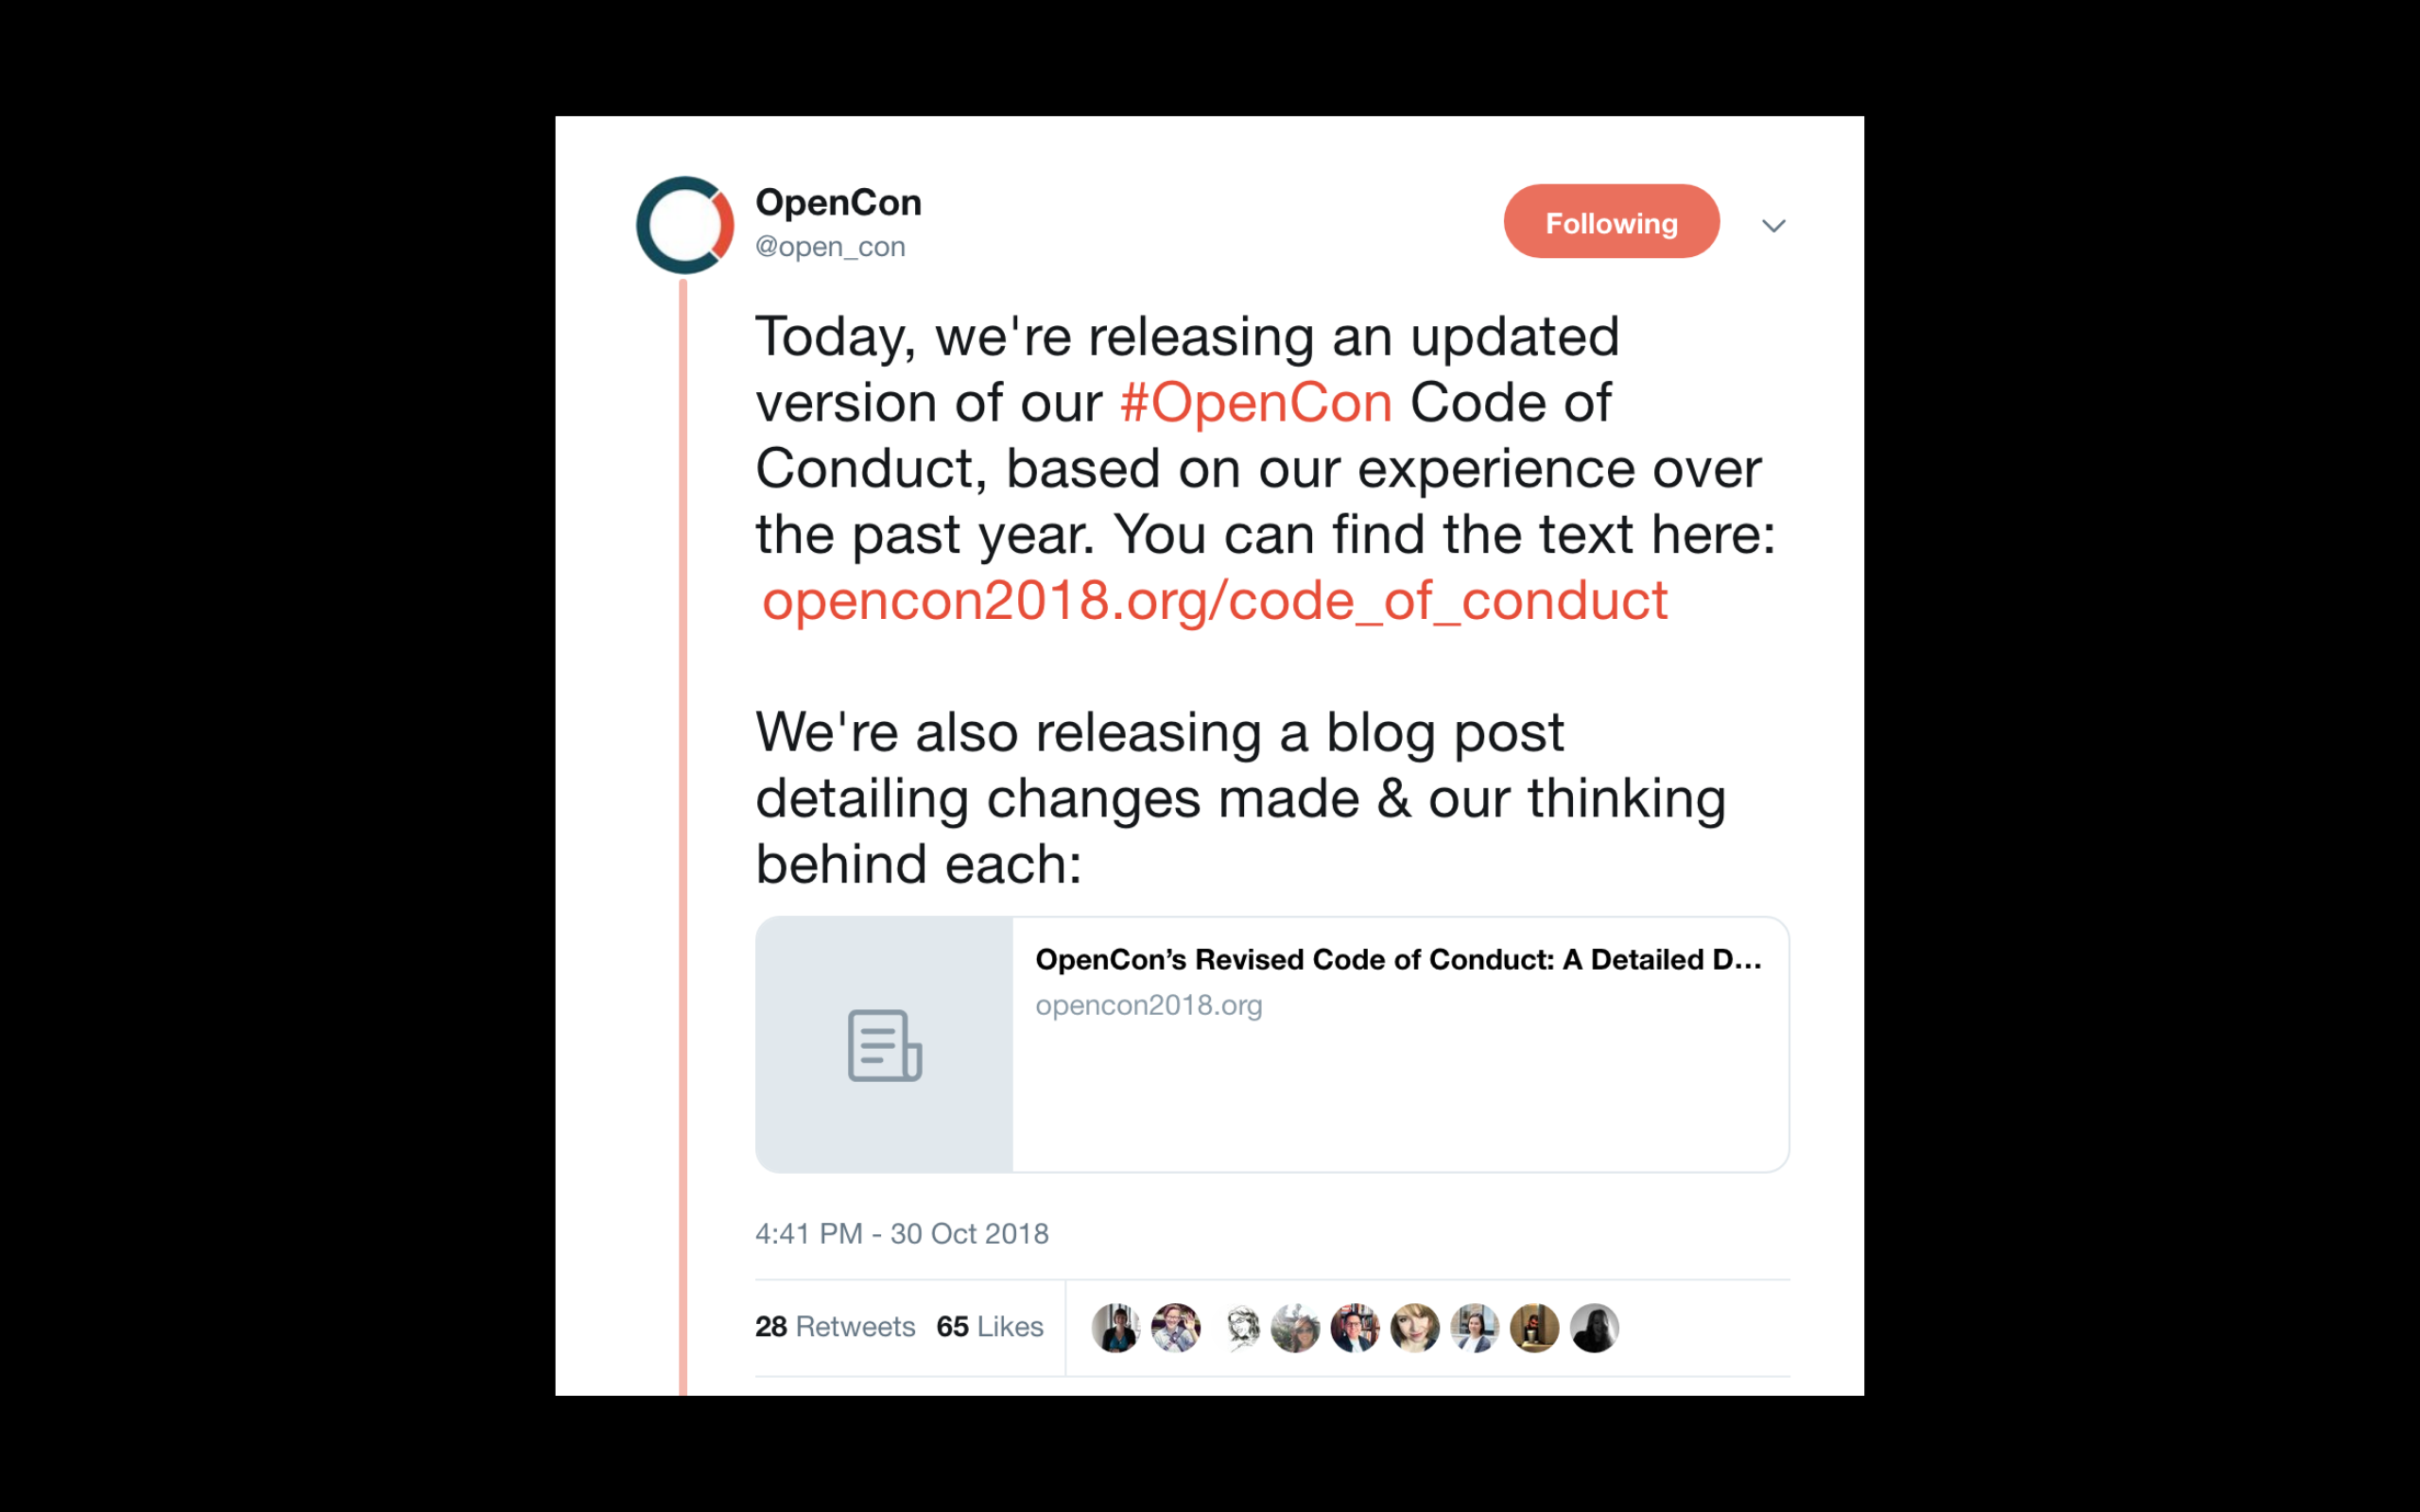 Tweet about the Opencon Code of Conduct